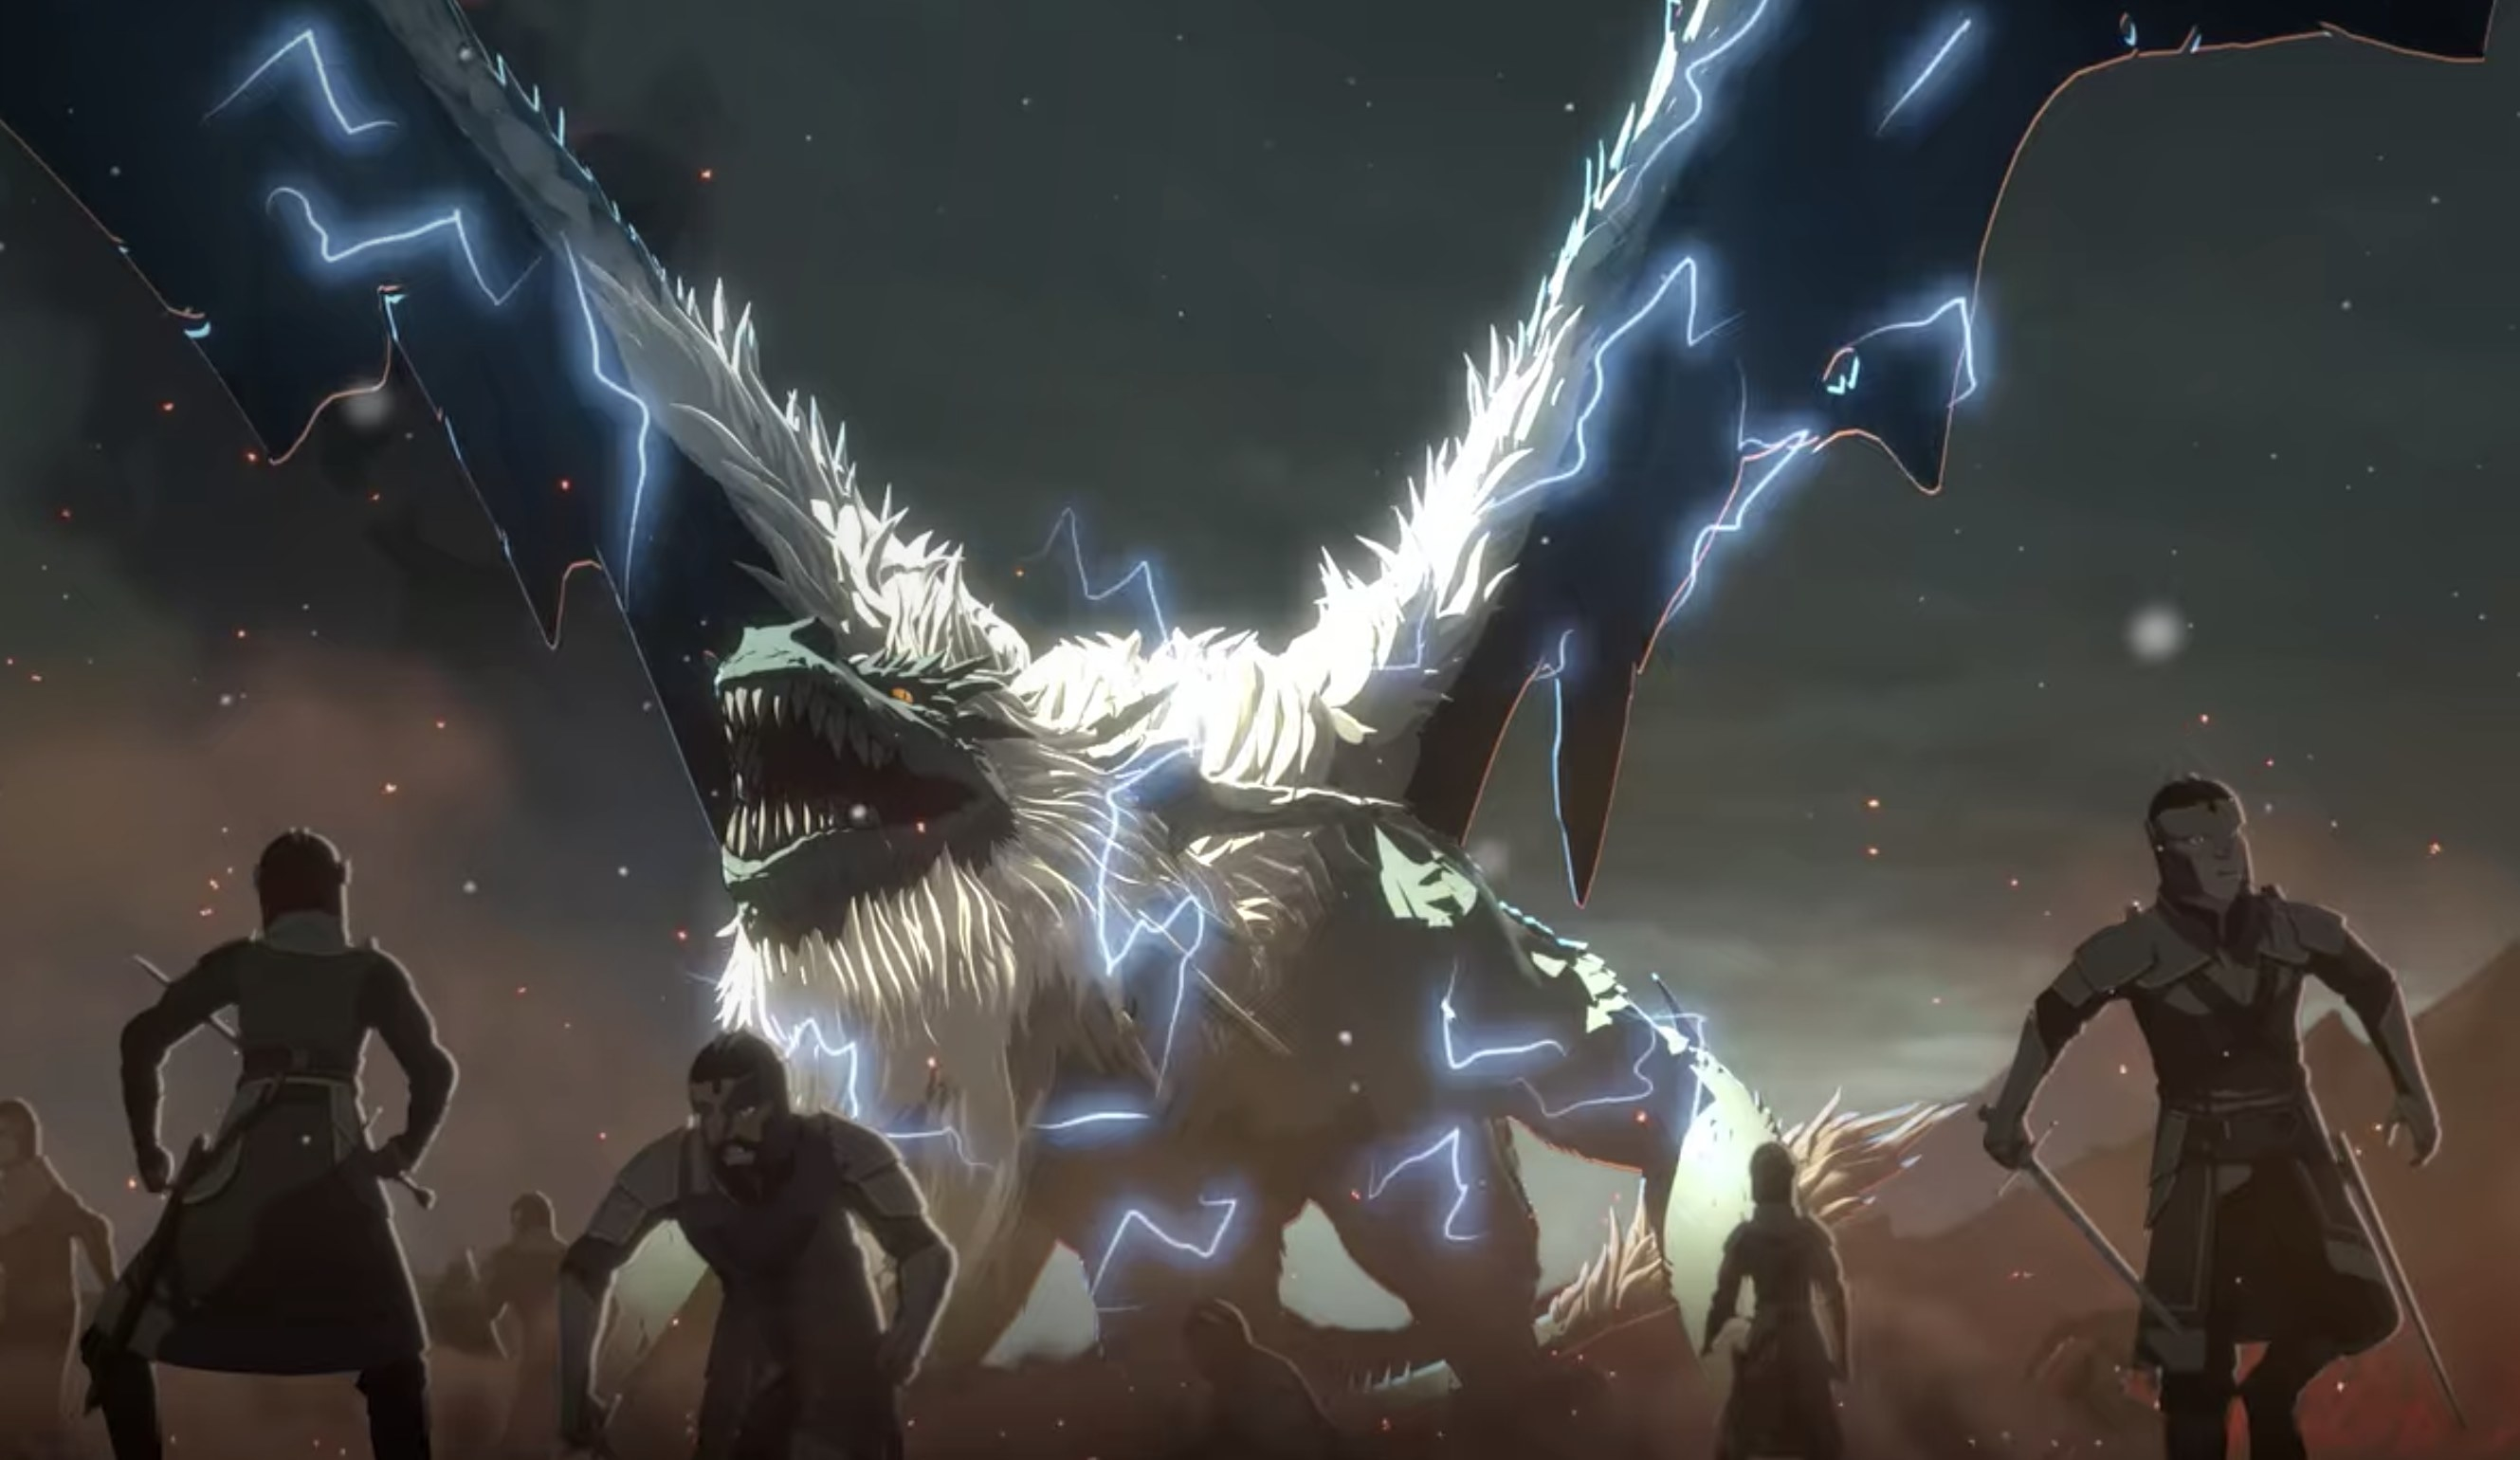 People being attacked by giant dragon